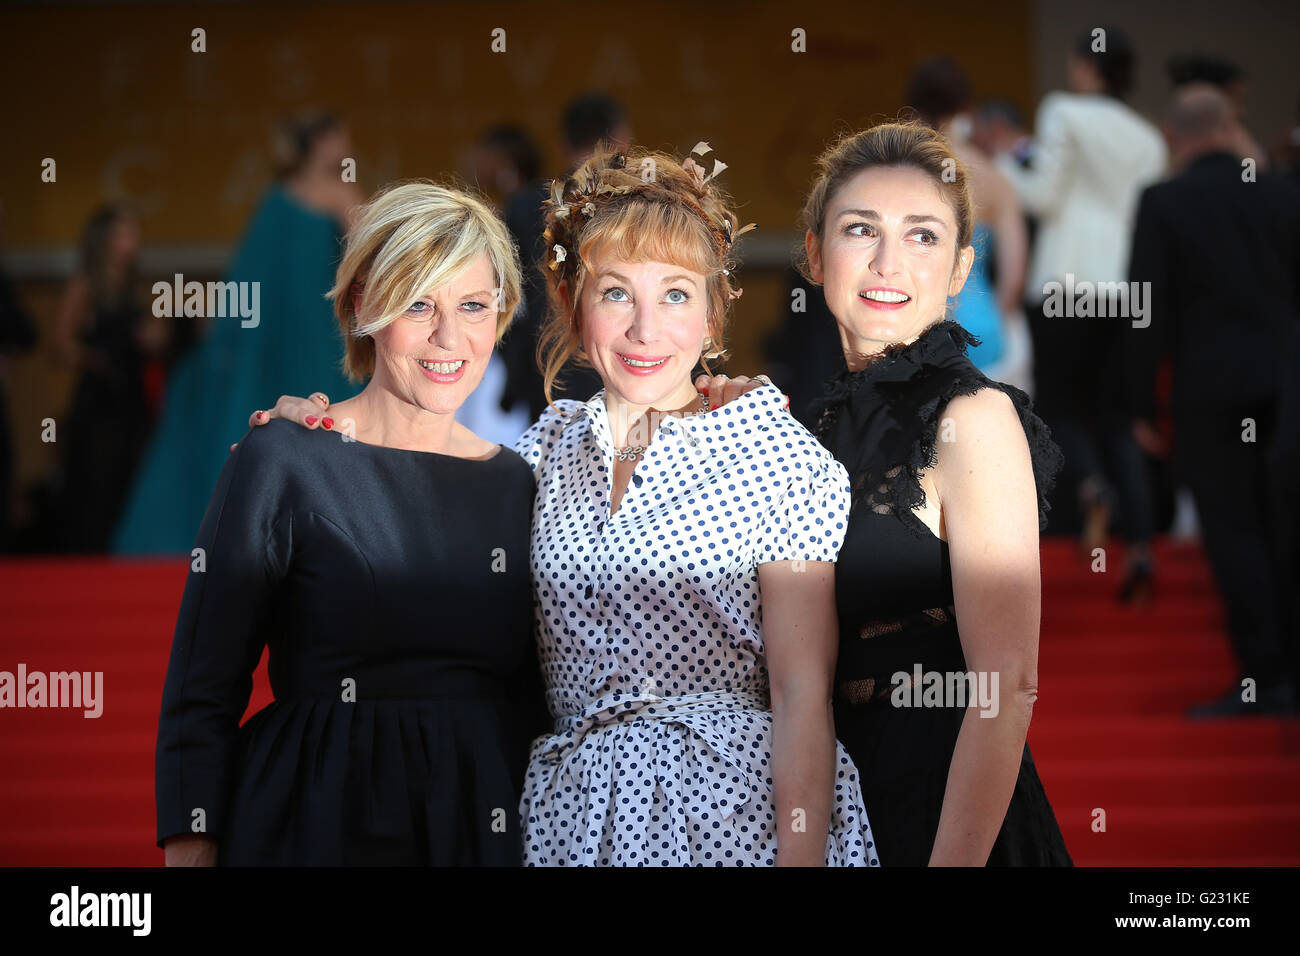 Actresses Chantal Ladesou, from left, Julie Depardieu and Julie Gayet pose for photographers upon arrival at the - Stock Image